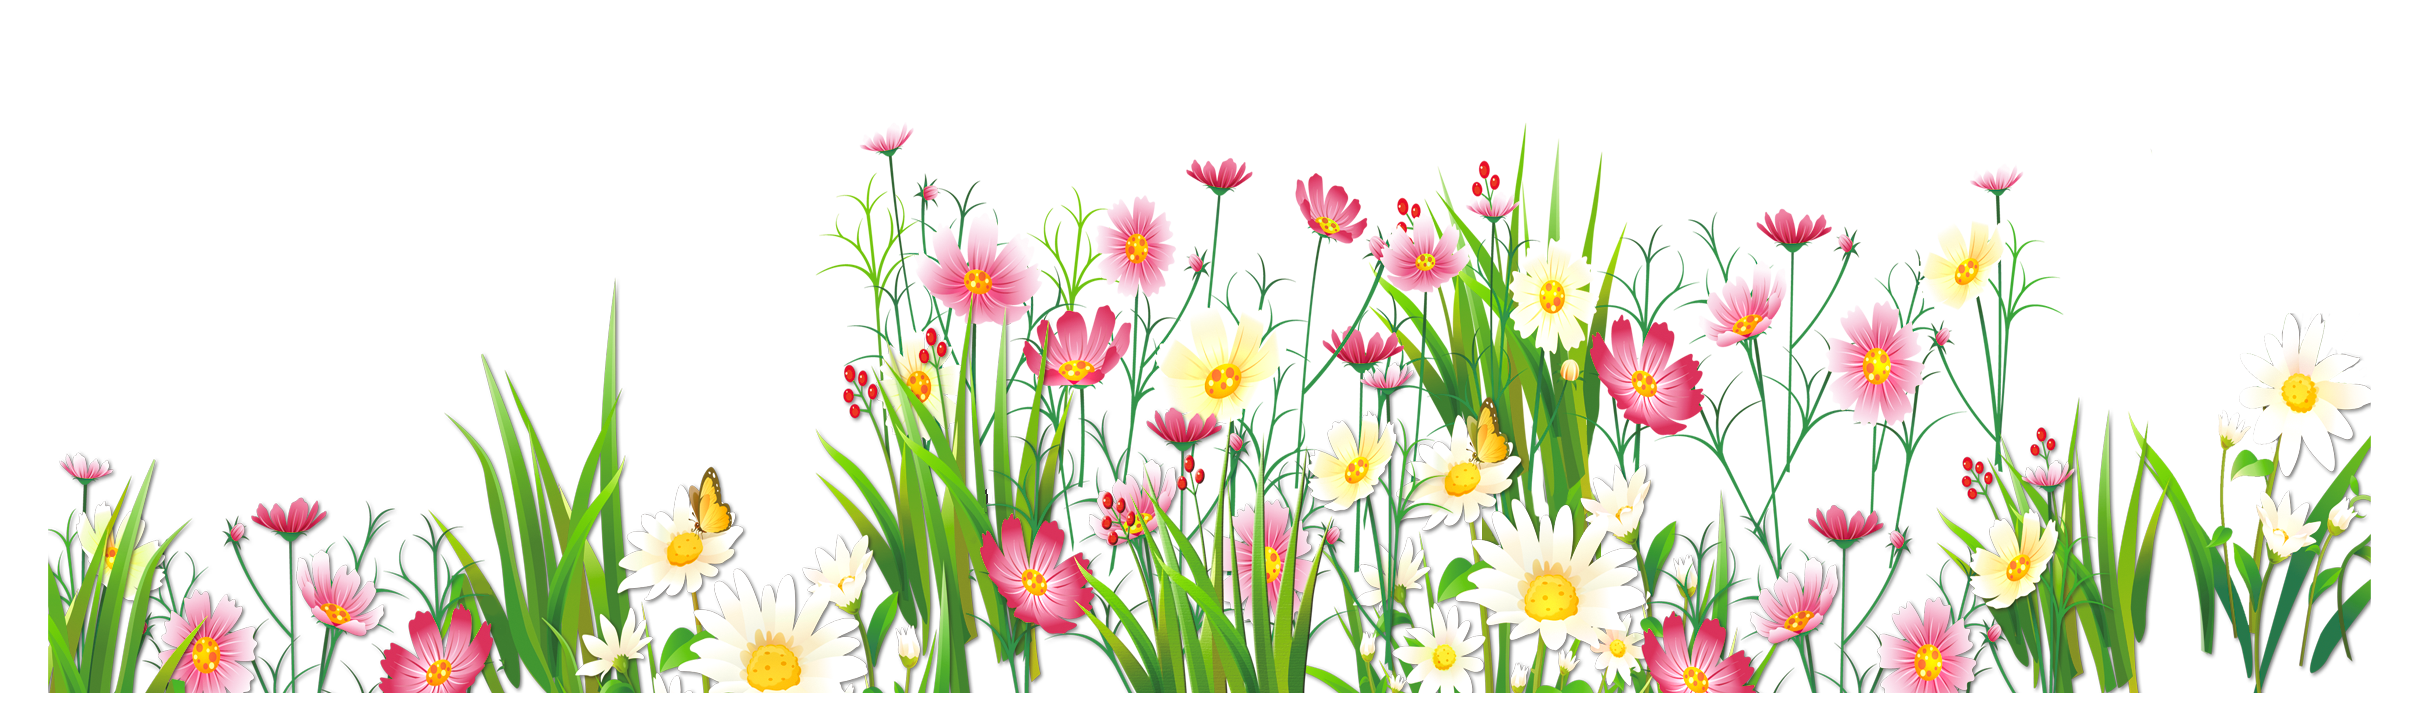 vector library Yard clipart transparent. Flowers and grass png.